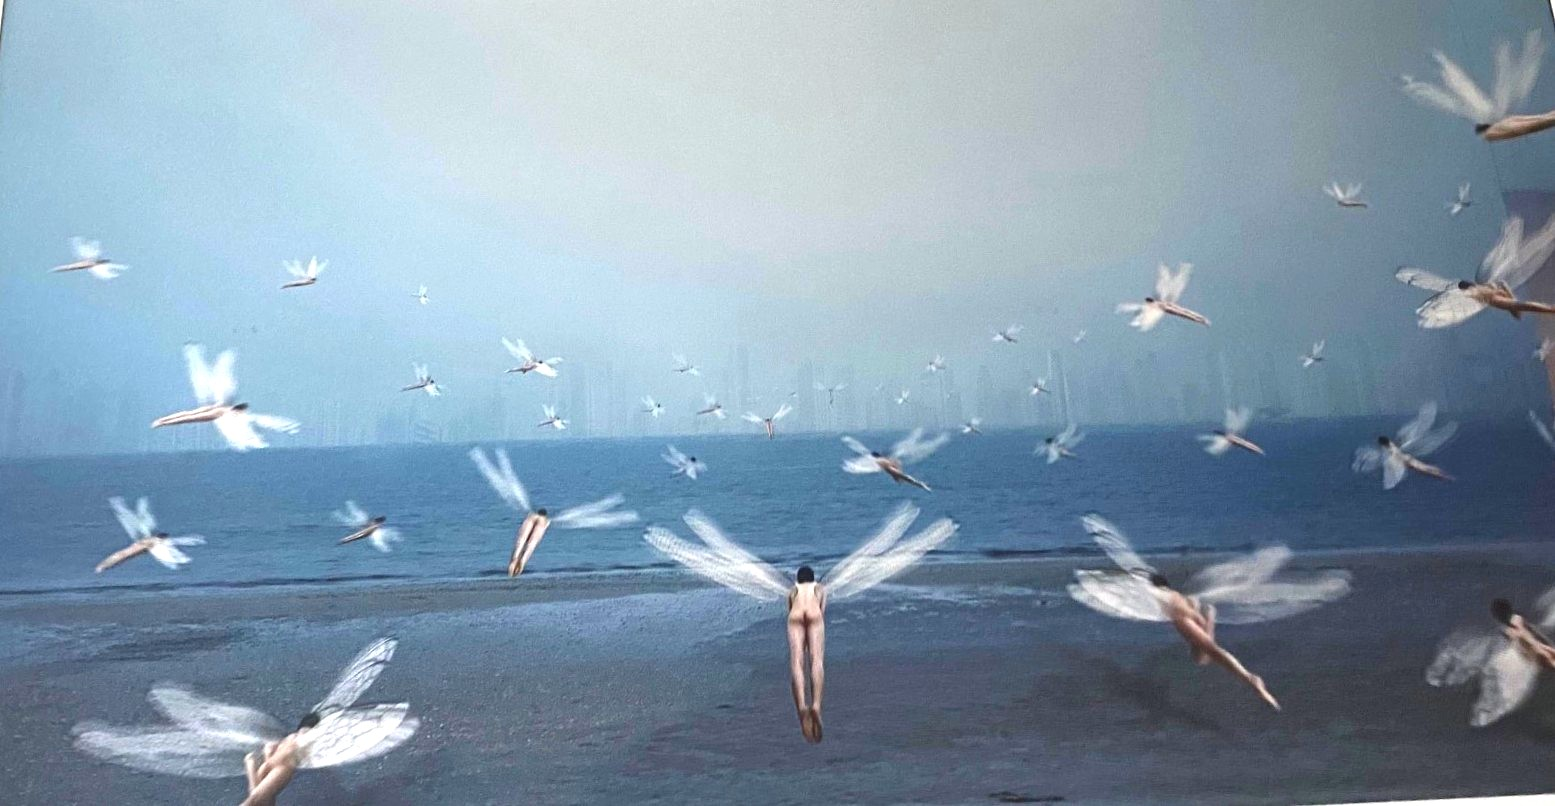 Mirage 2005 artwork by Chi Peng - art listed for sale on Artplode